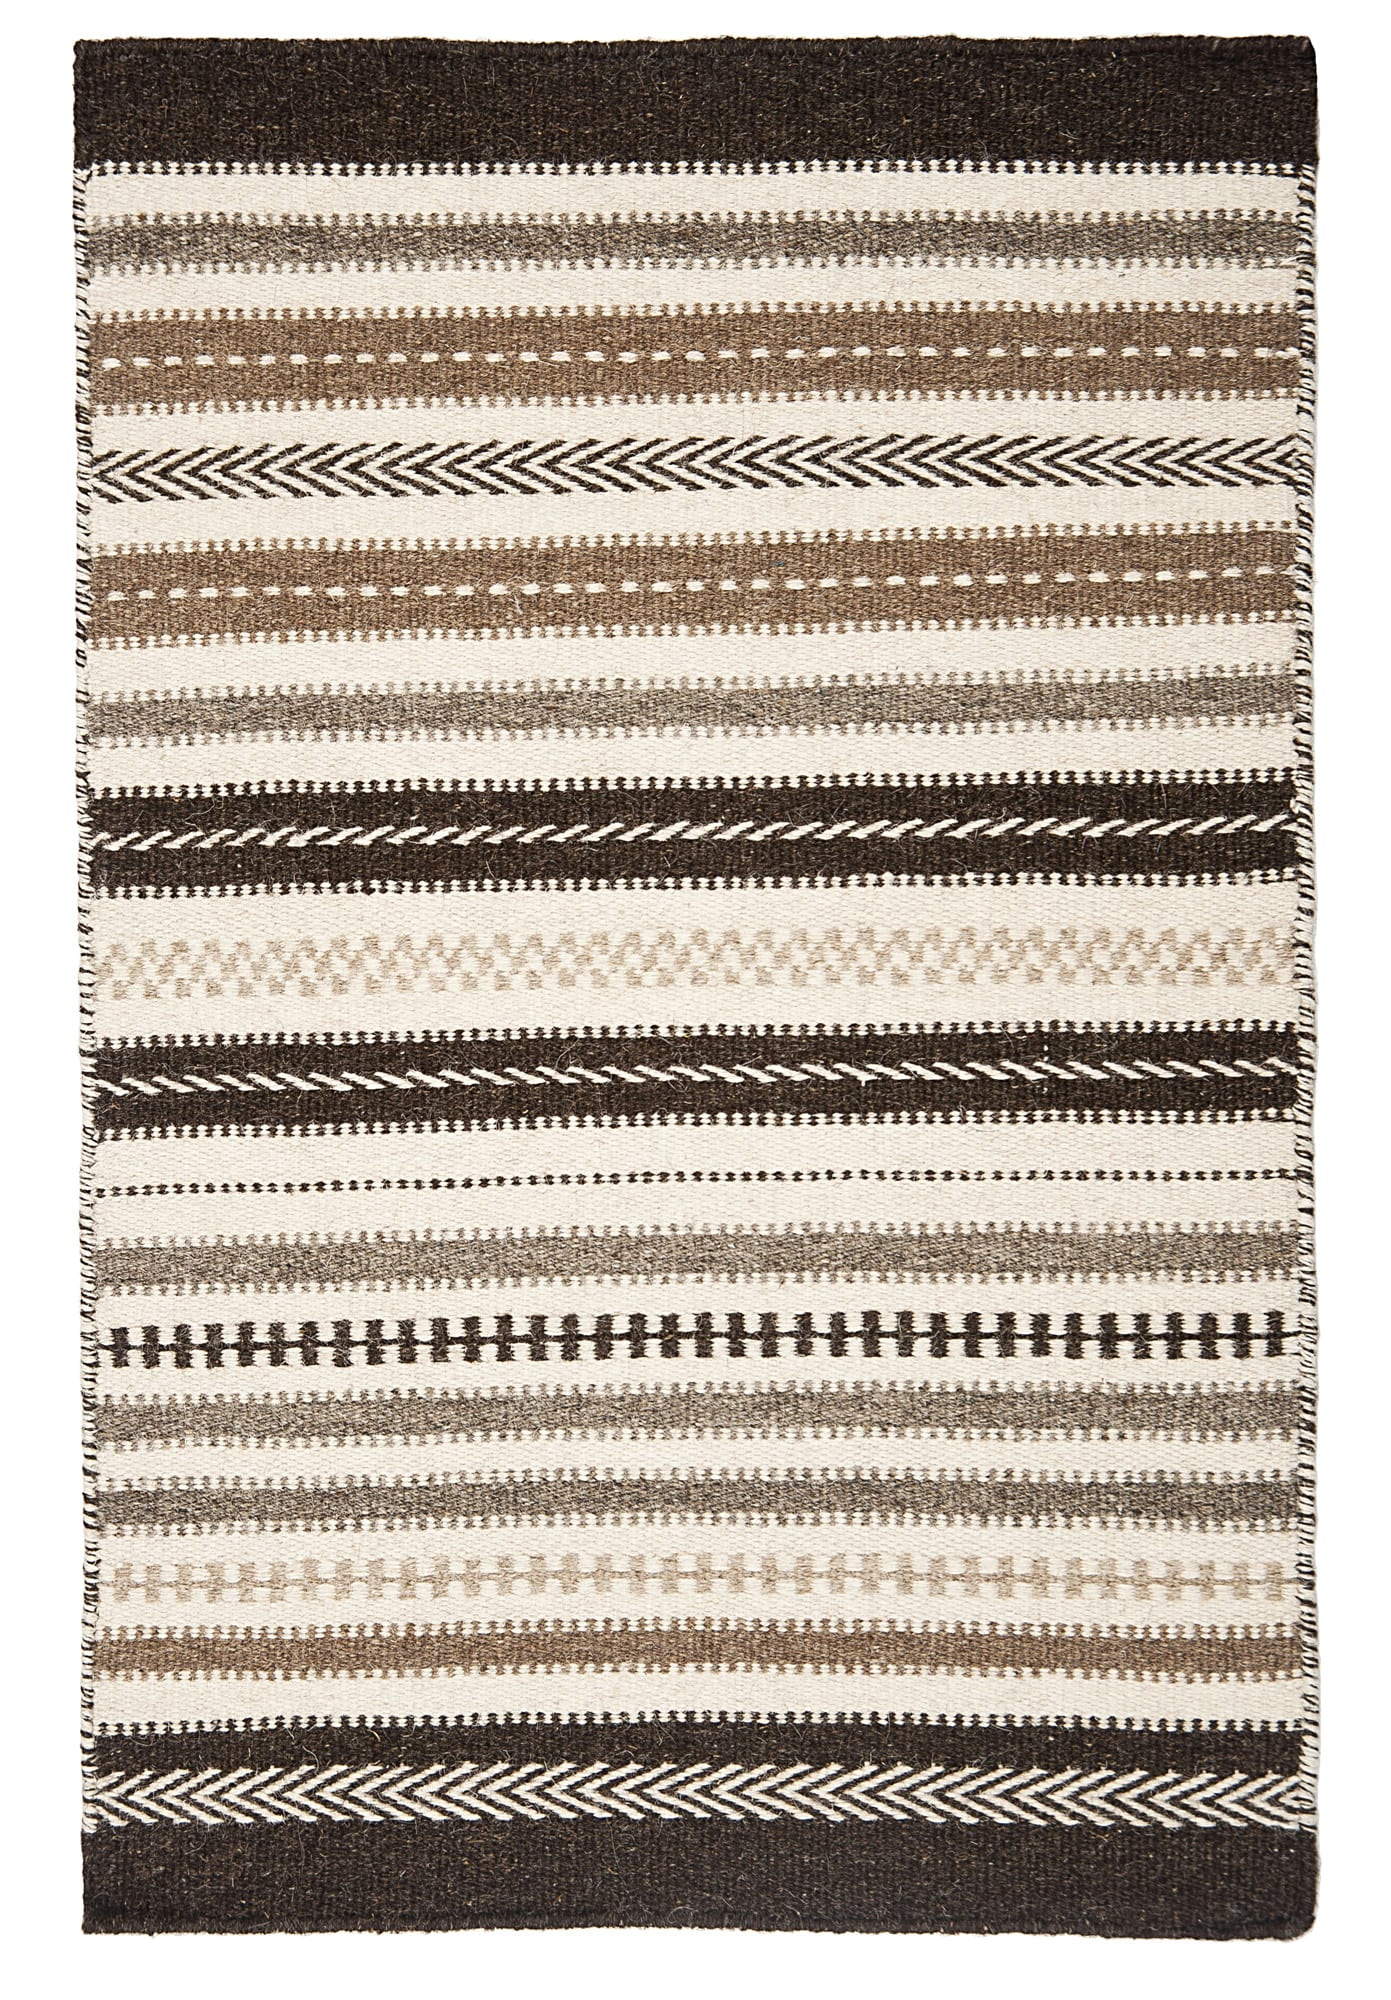 Woven Rugs Icelandic Natural Wool Woven Rug Hook And Loom